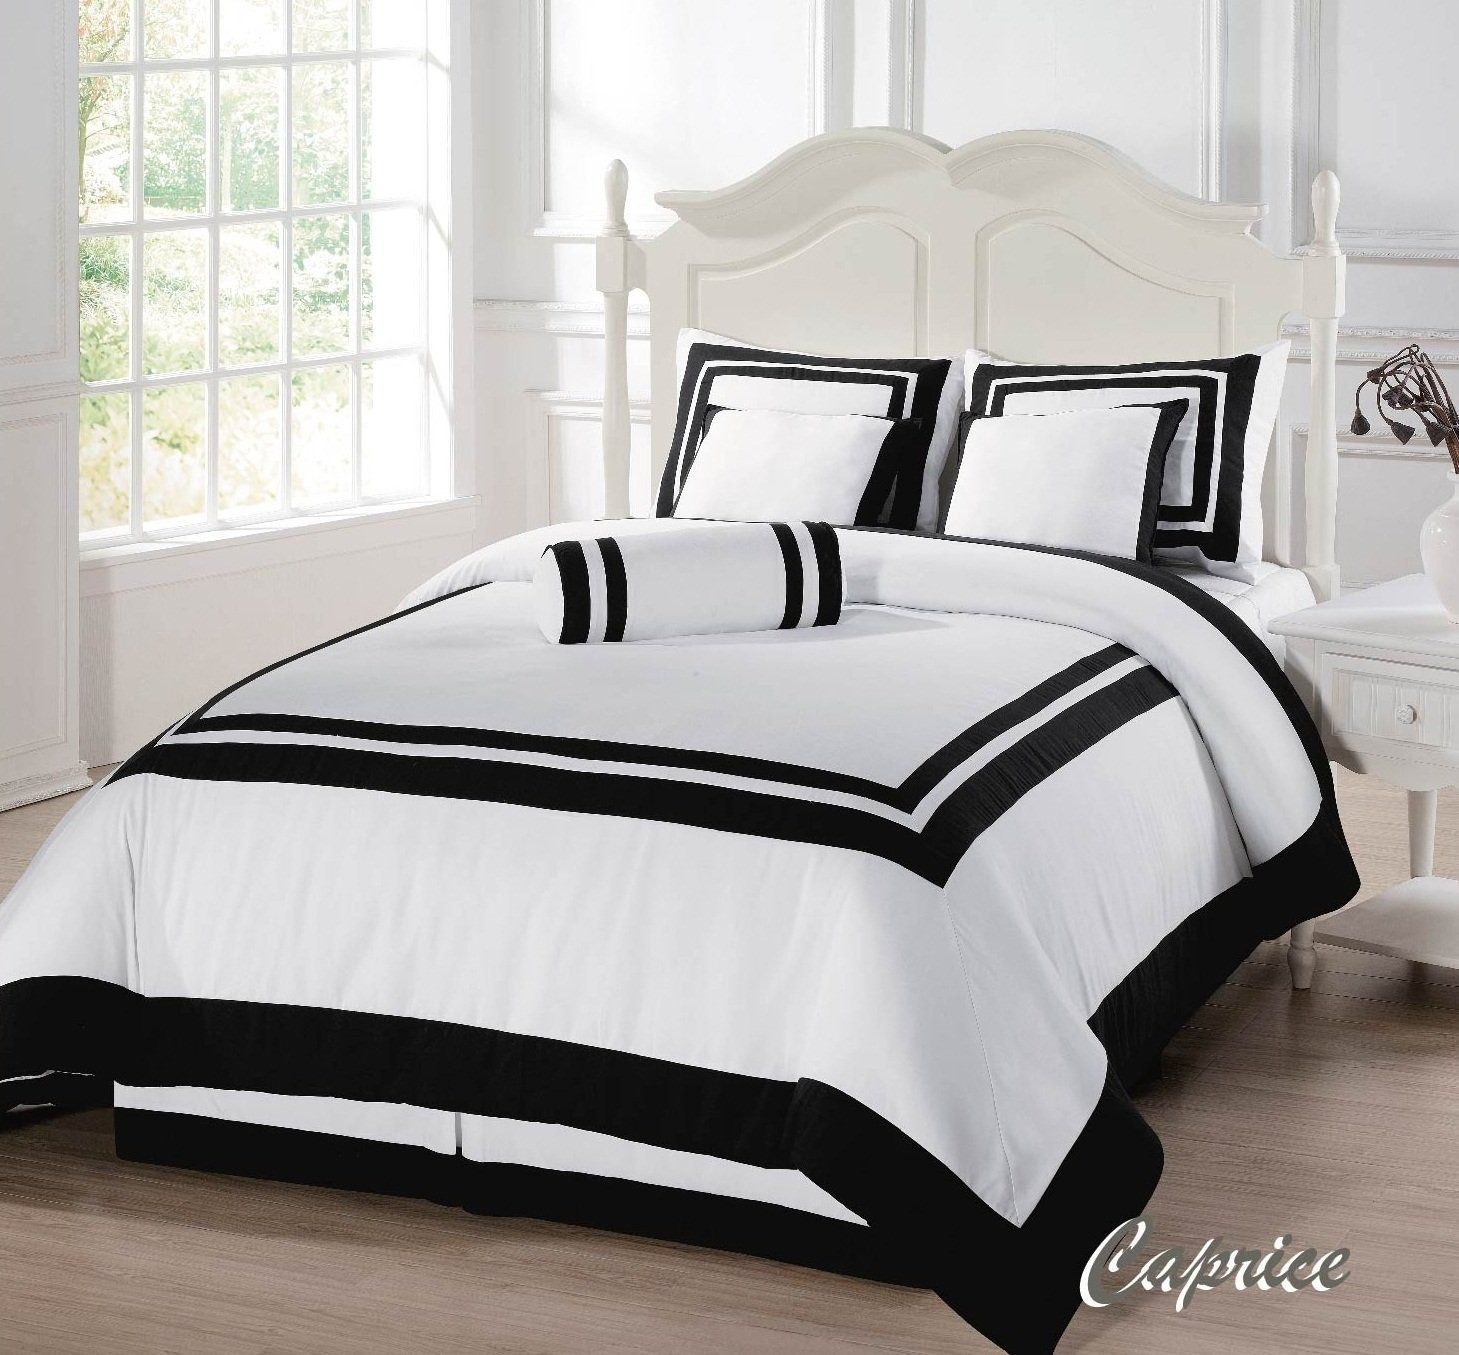 Amazon White with Black Square Hotel Duvet Cover 7 Piece